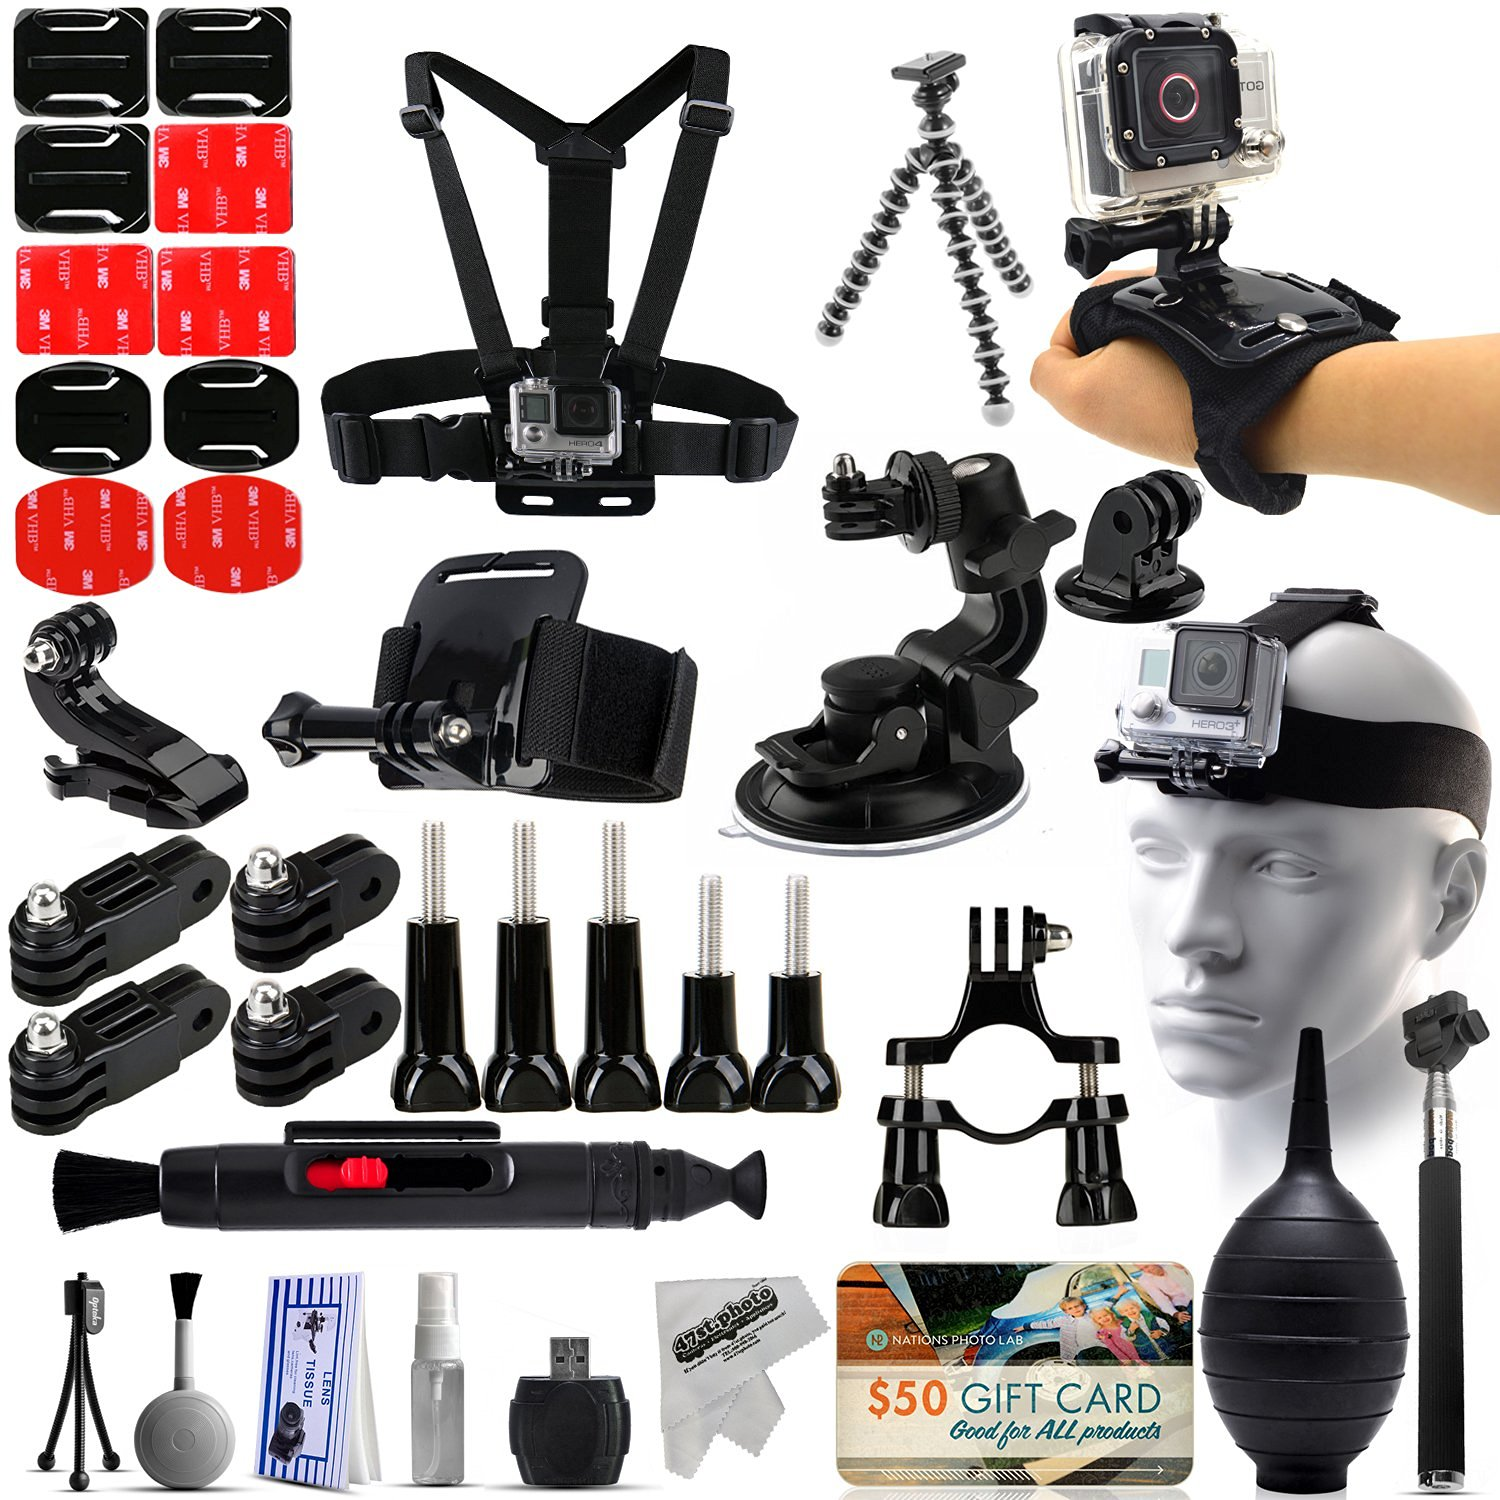 50-in-1 Biker Set with Body Cheast Strap + Flexible Tripod + Suction Cup + Head + Hand + Wrist + Handlebar Seatpost Mount + Monopod Accessories Kit Bundle for GoPro Hero 4 3 3+ 2 Black Plus Session